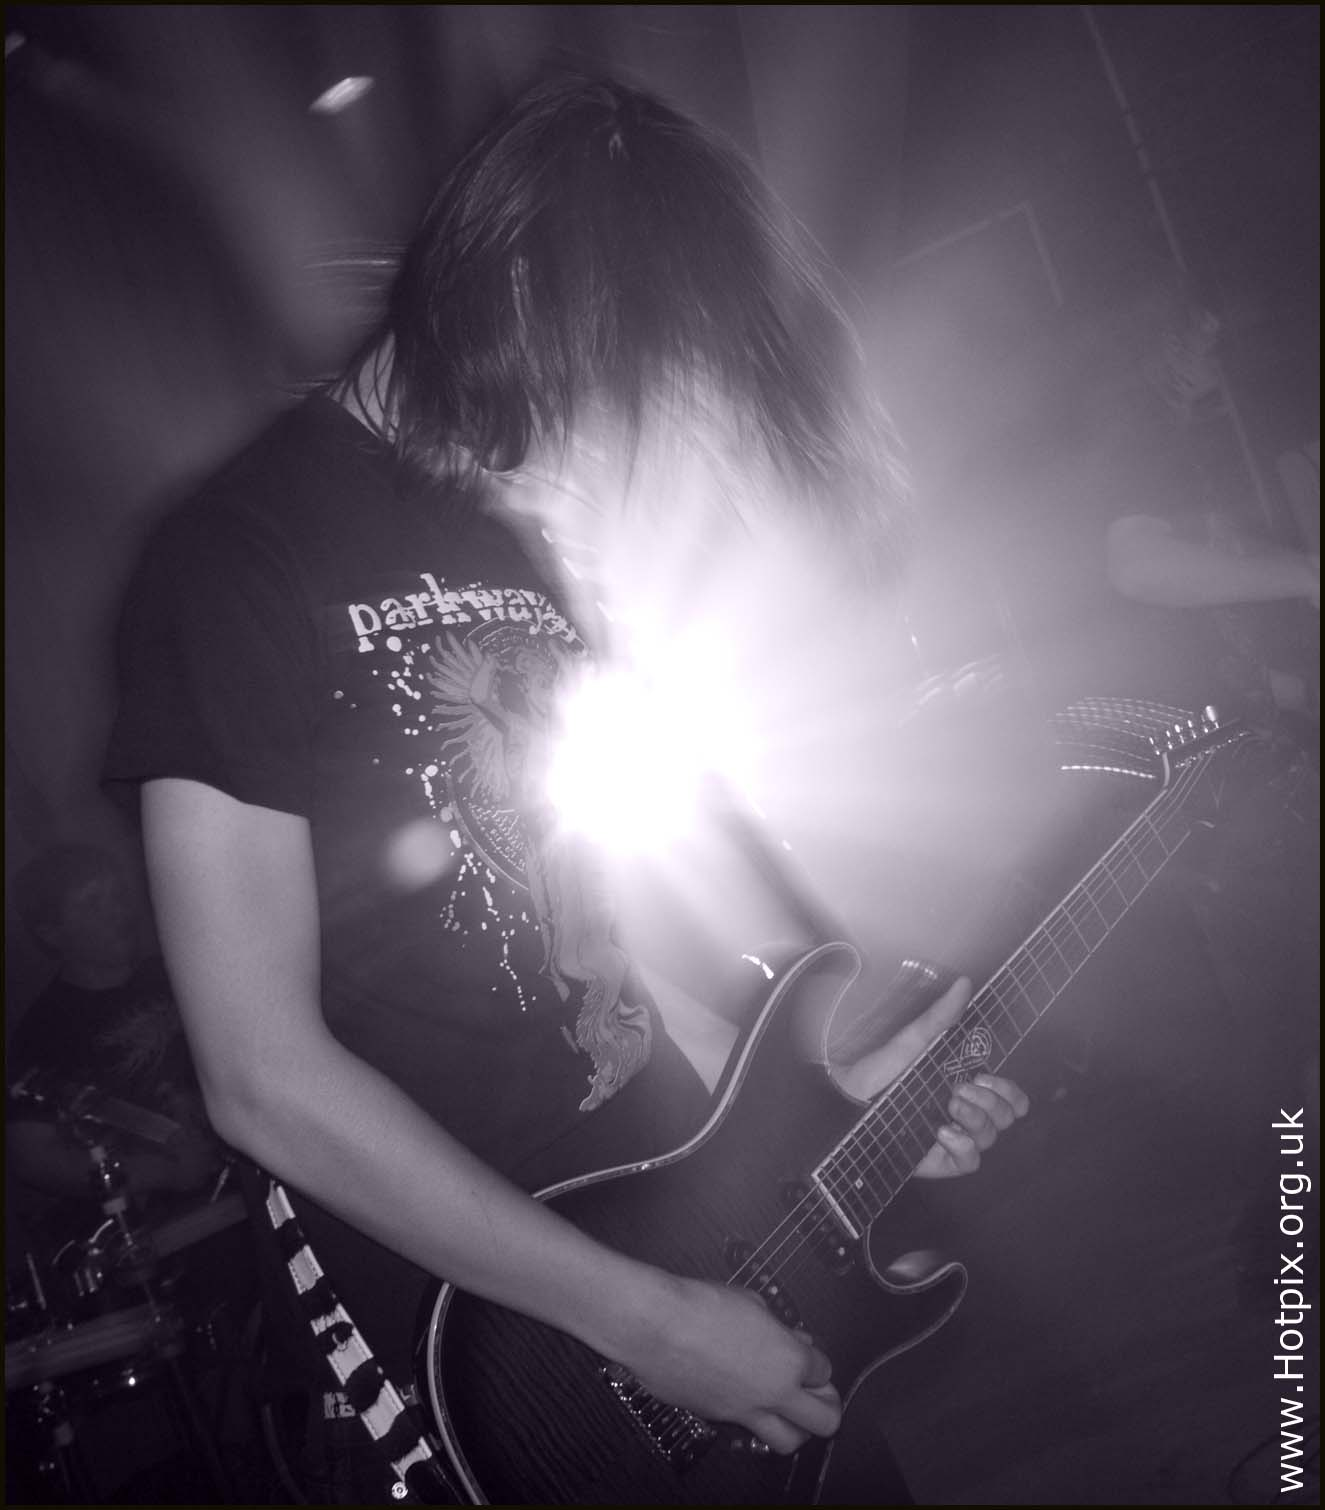 AQOE,crewe,band,metal,grind,core,grindcore,question,etiquette,banned!,network,northwich,gig,concert,date,live,cheshire,uk,england,britain,british,thrash,tonysmith,hotpx,hotpixuk,tony,smith,dark,disturbia,hot pix,light,stream,lightstream,stage,gigs,music,bands,musicians,musician,performing,playing,MIS,ActiveH,housingtechnology